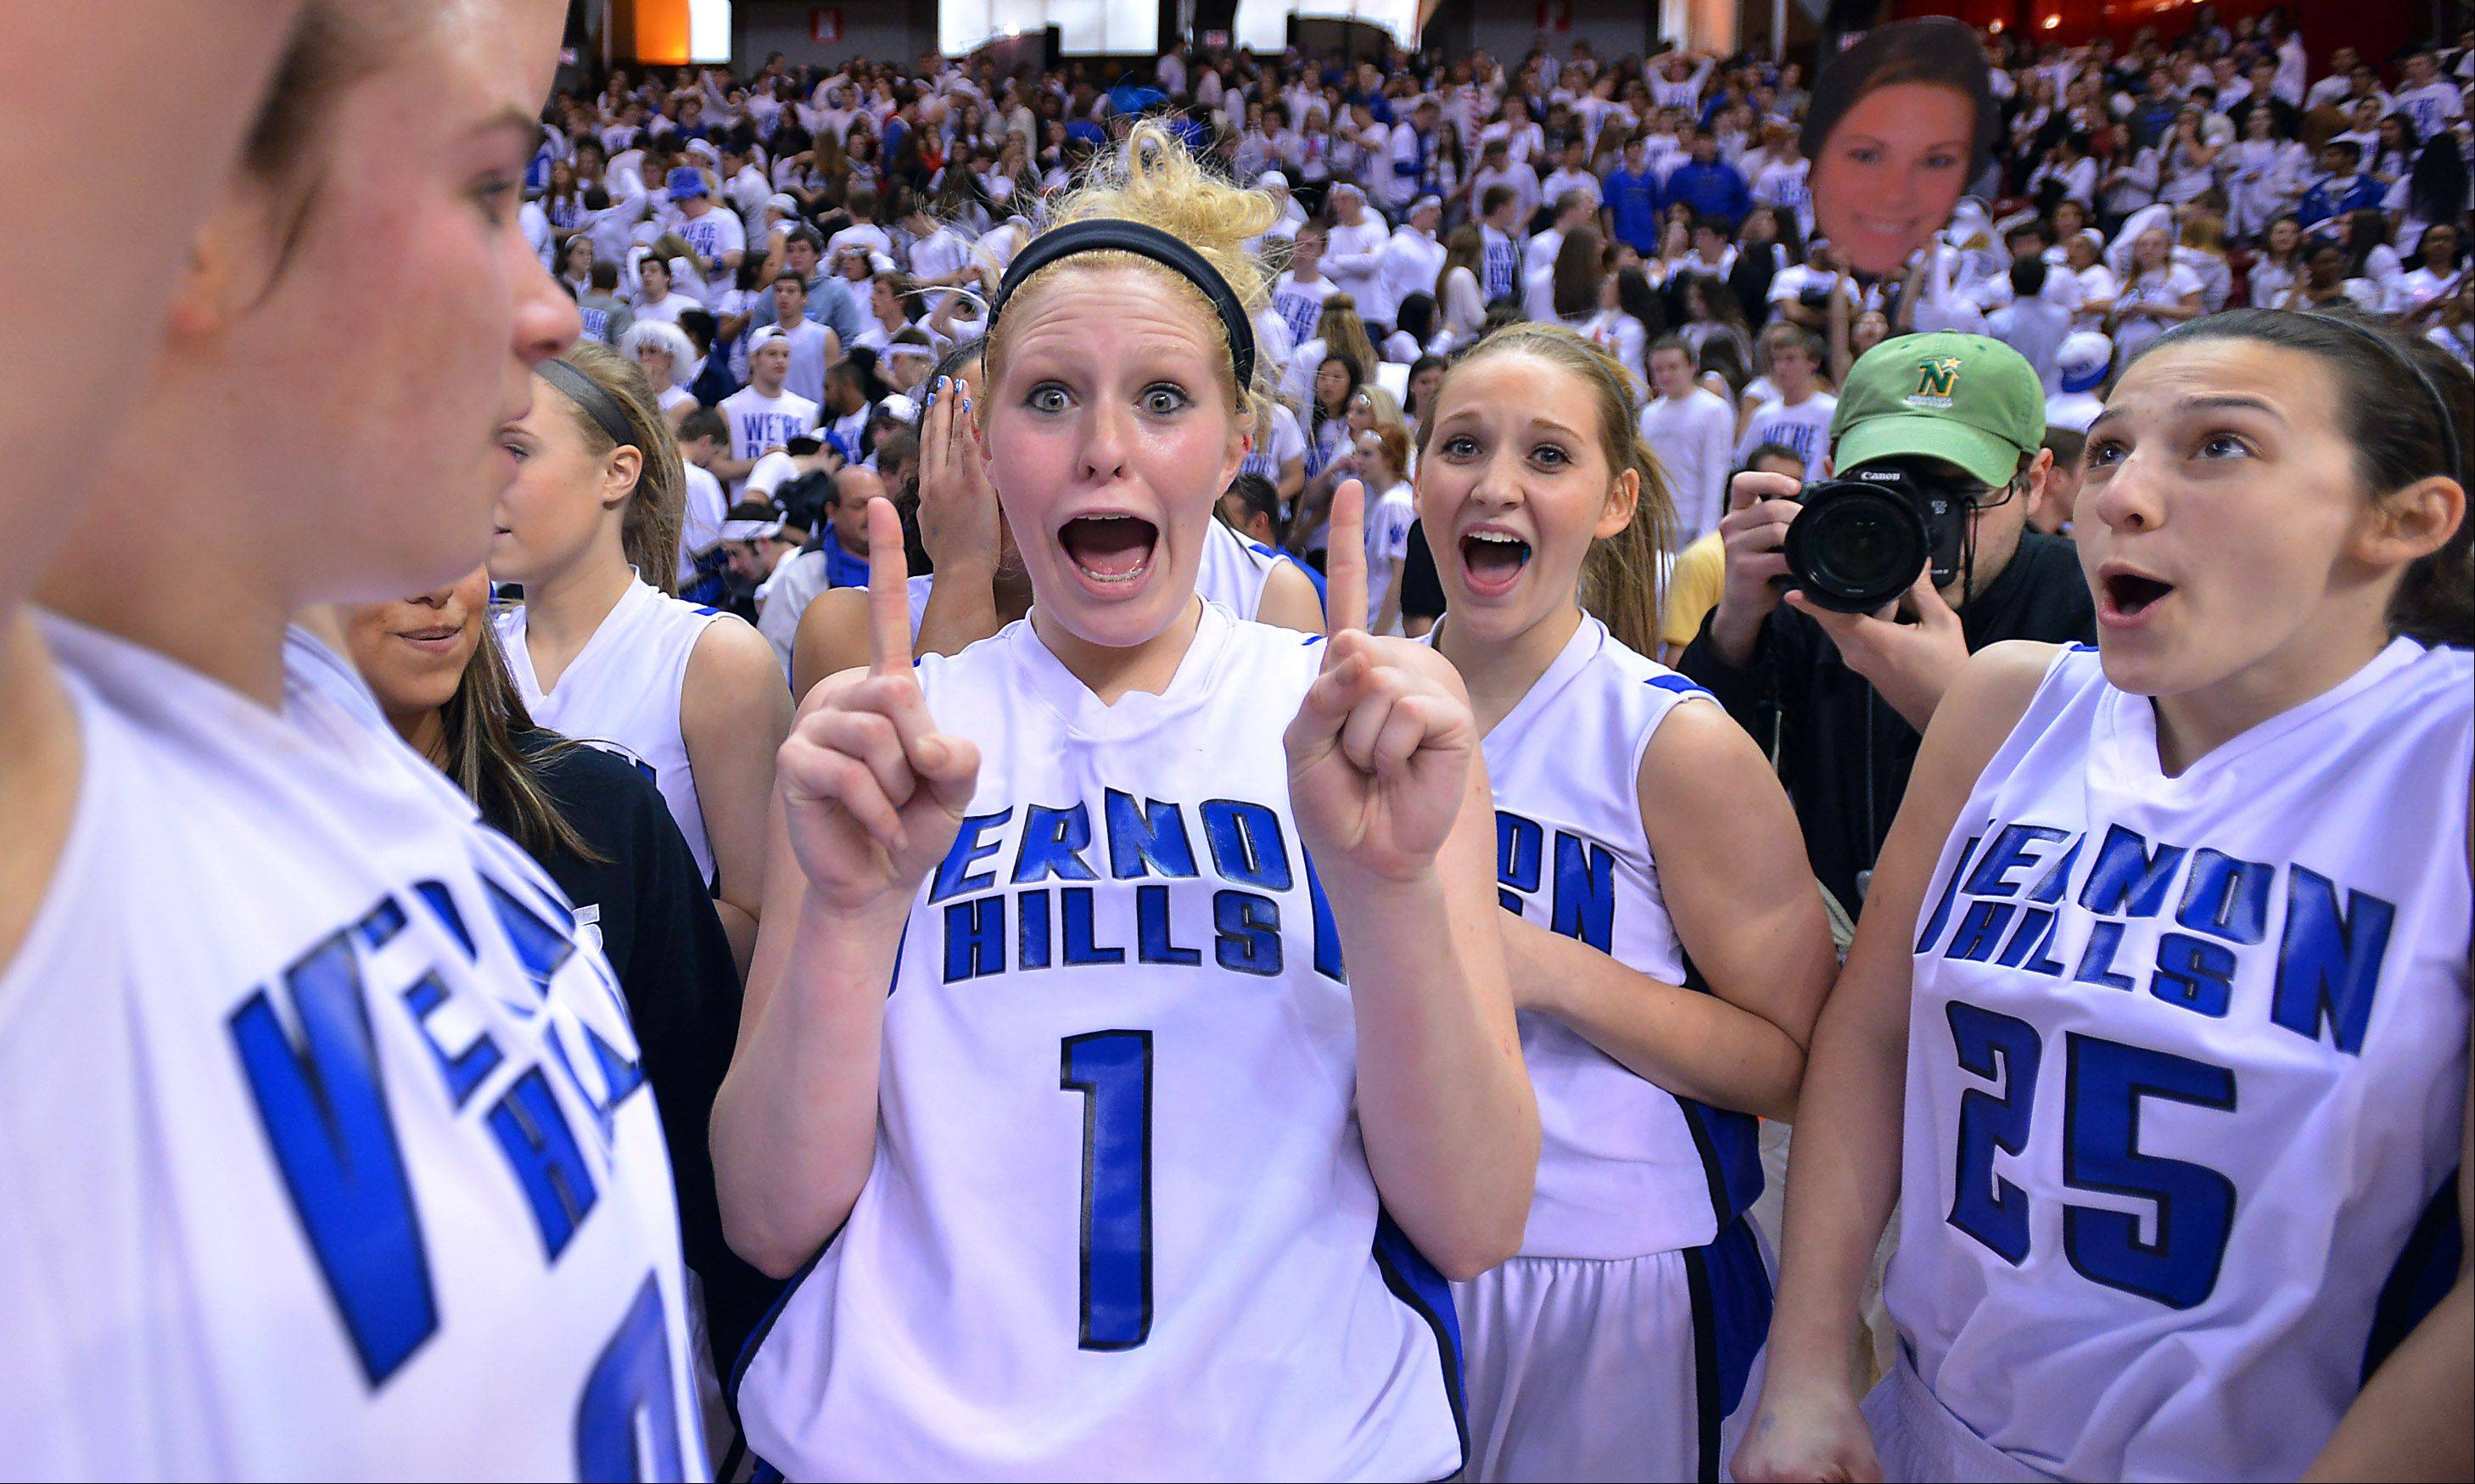 Vernon Hills Sydney Smith shows the world who is number one after they won in overtime against Montini in the class 3A semifinal game Friday in Normal.